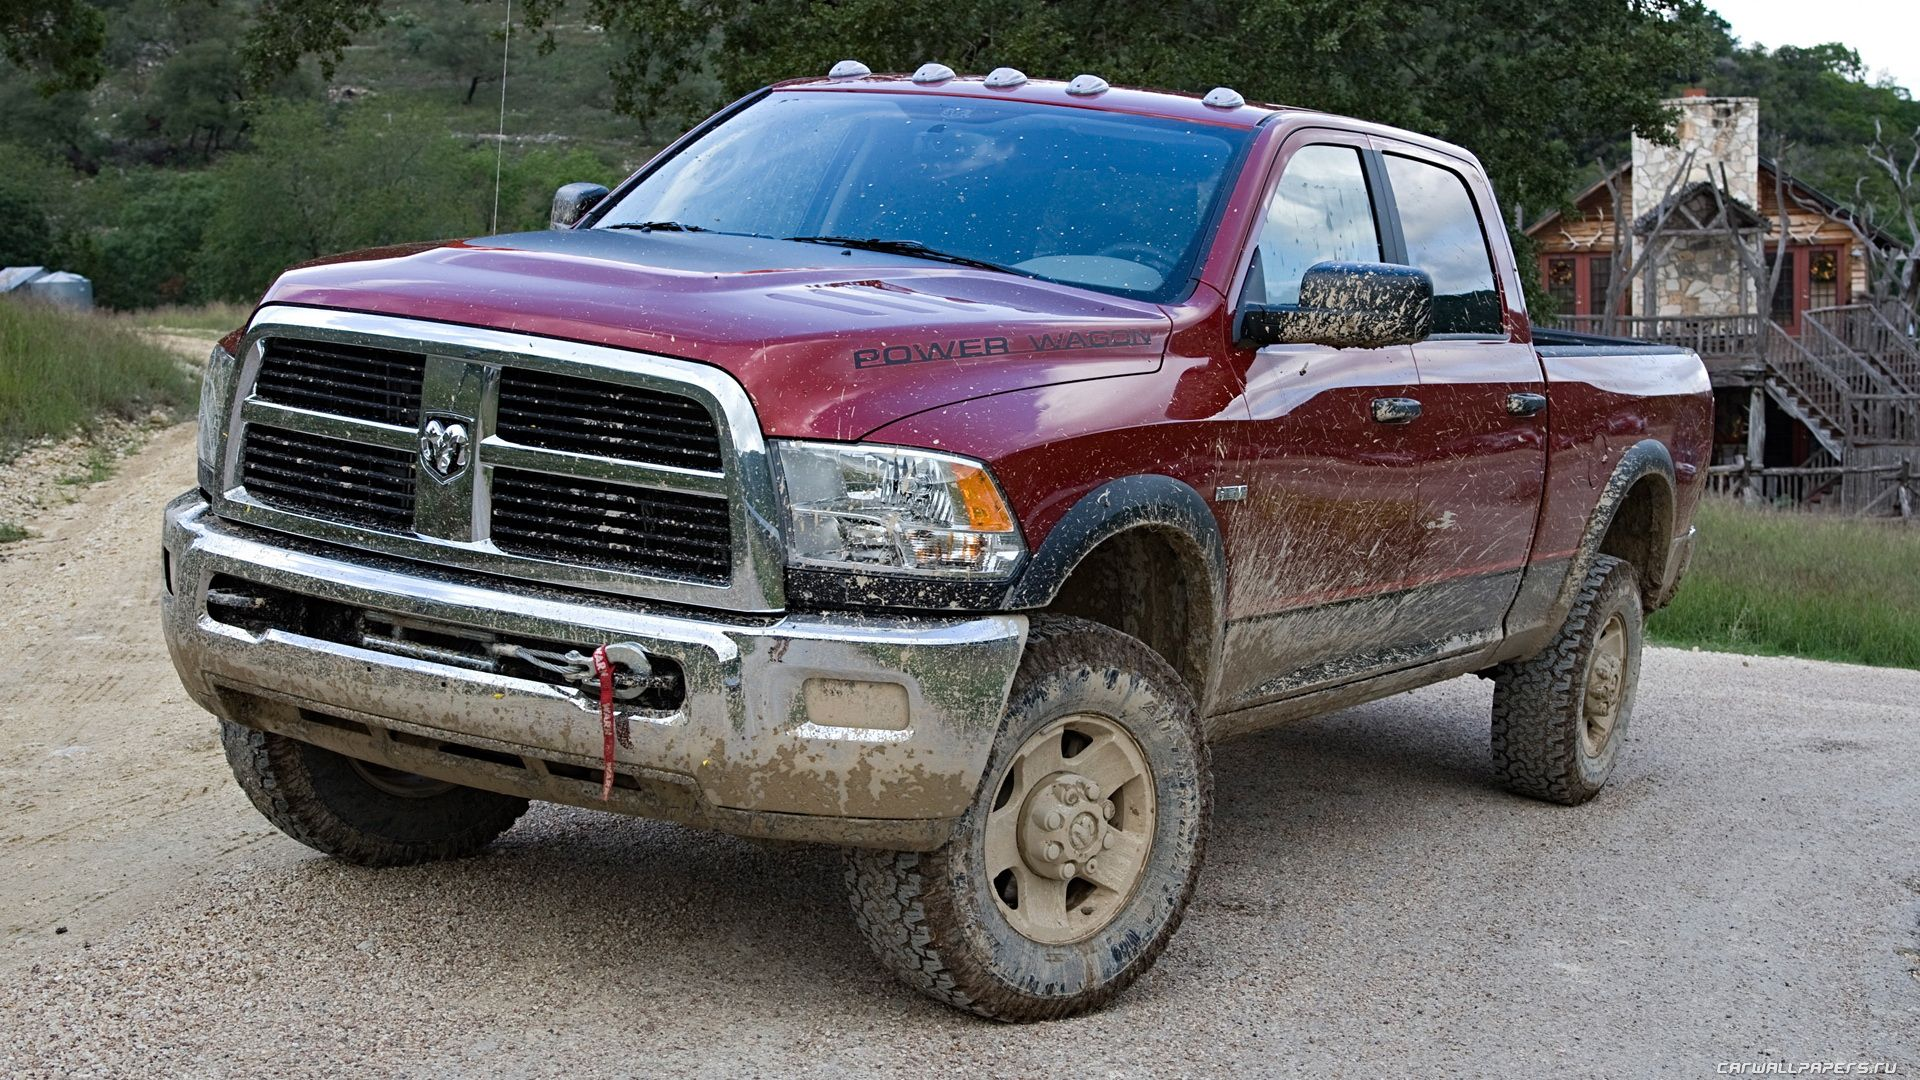 red dodge ram 2500 truck cars and motercycles Pinterest